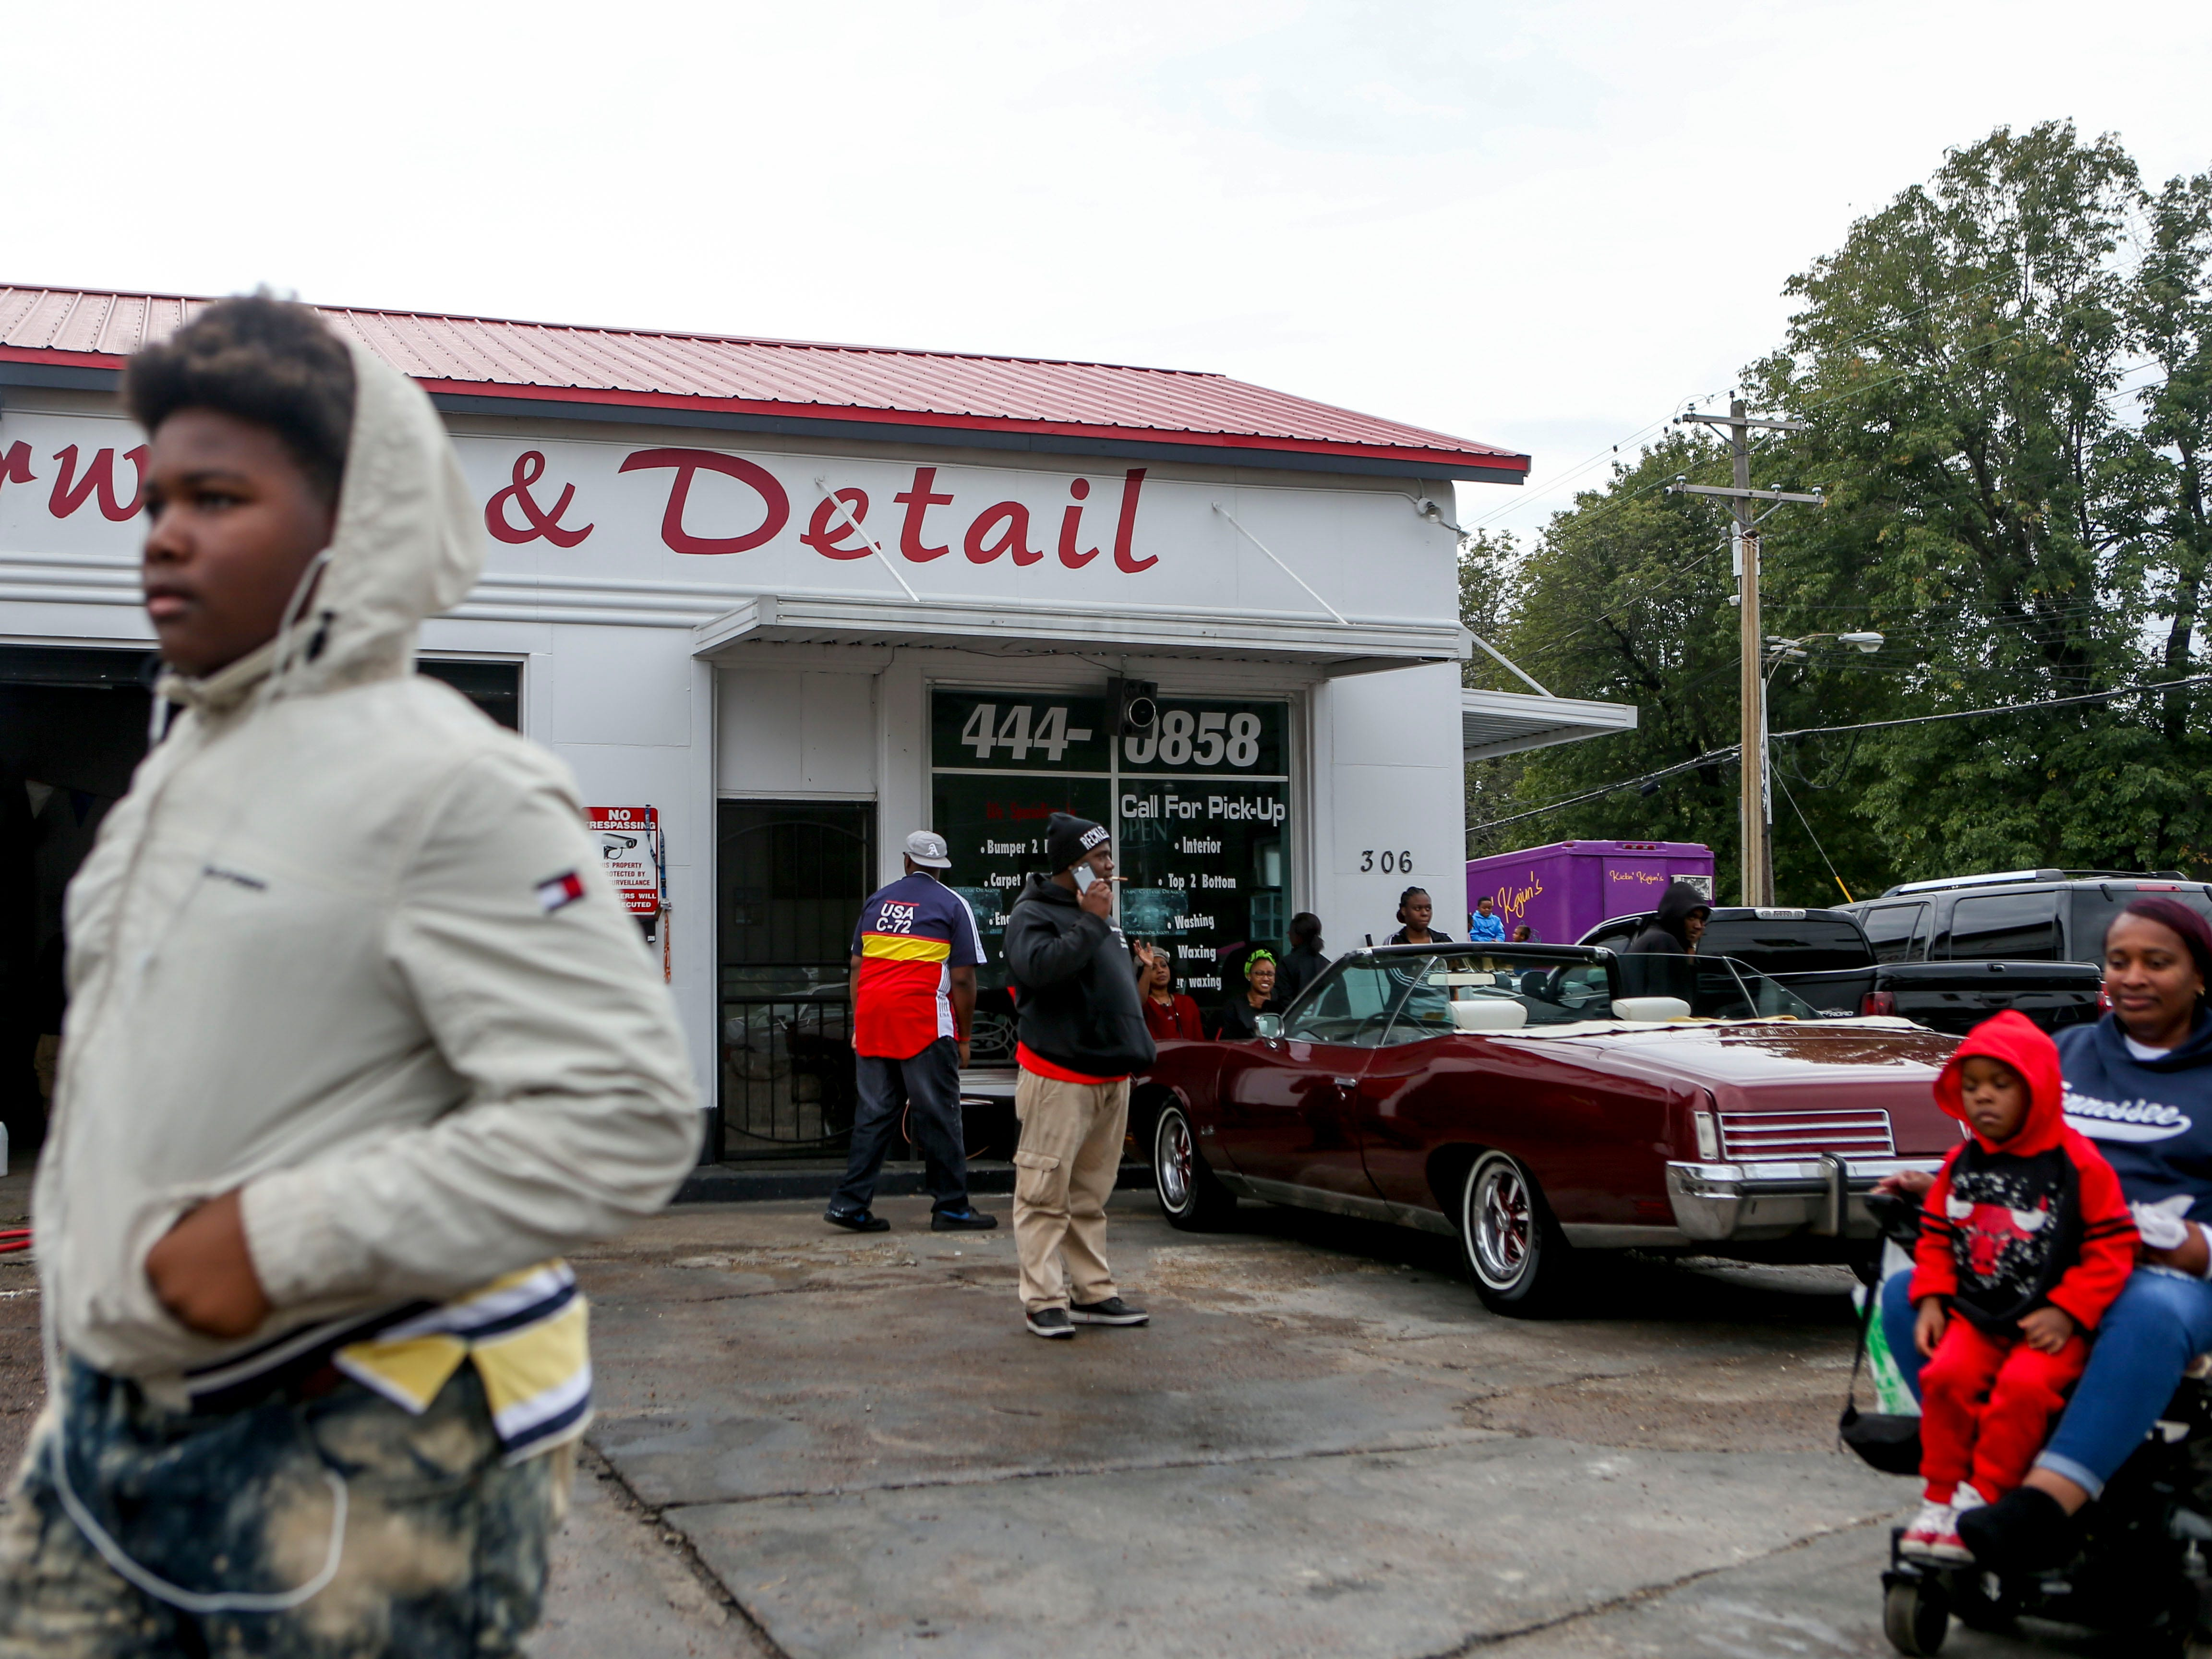 Residents walk past Corey's Carwash & Detail on homecoming weekend at T.R. White Sportsplex in Jackson, Tenn., on Saturday, Oct. 13, 2018.